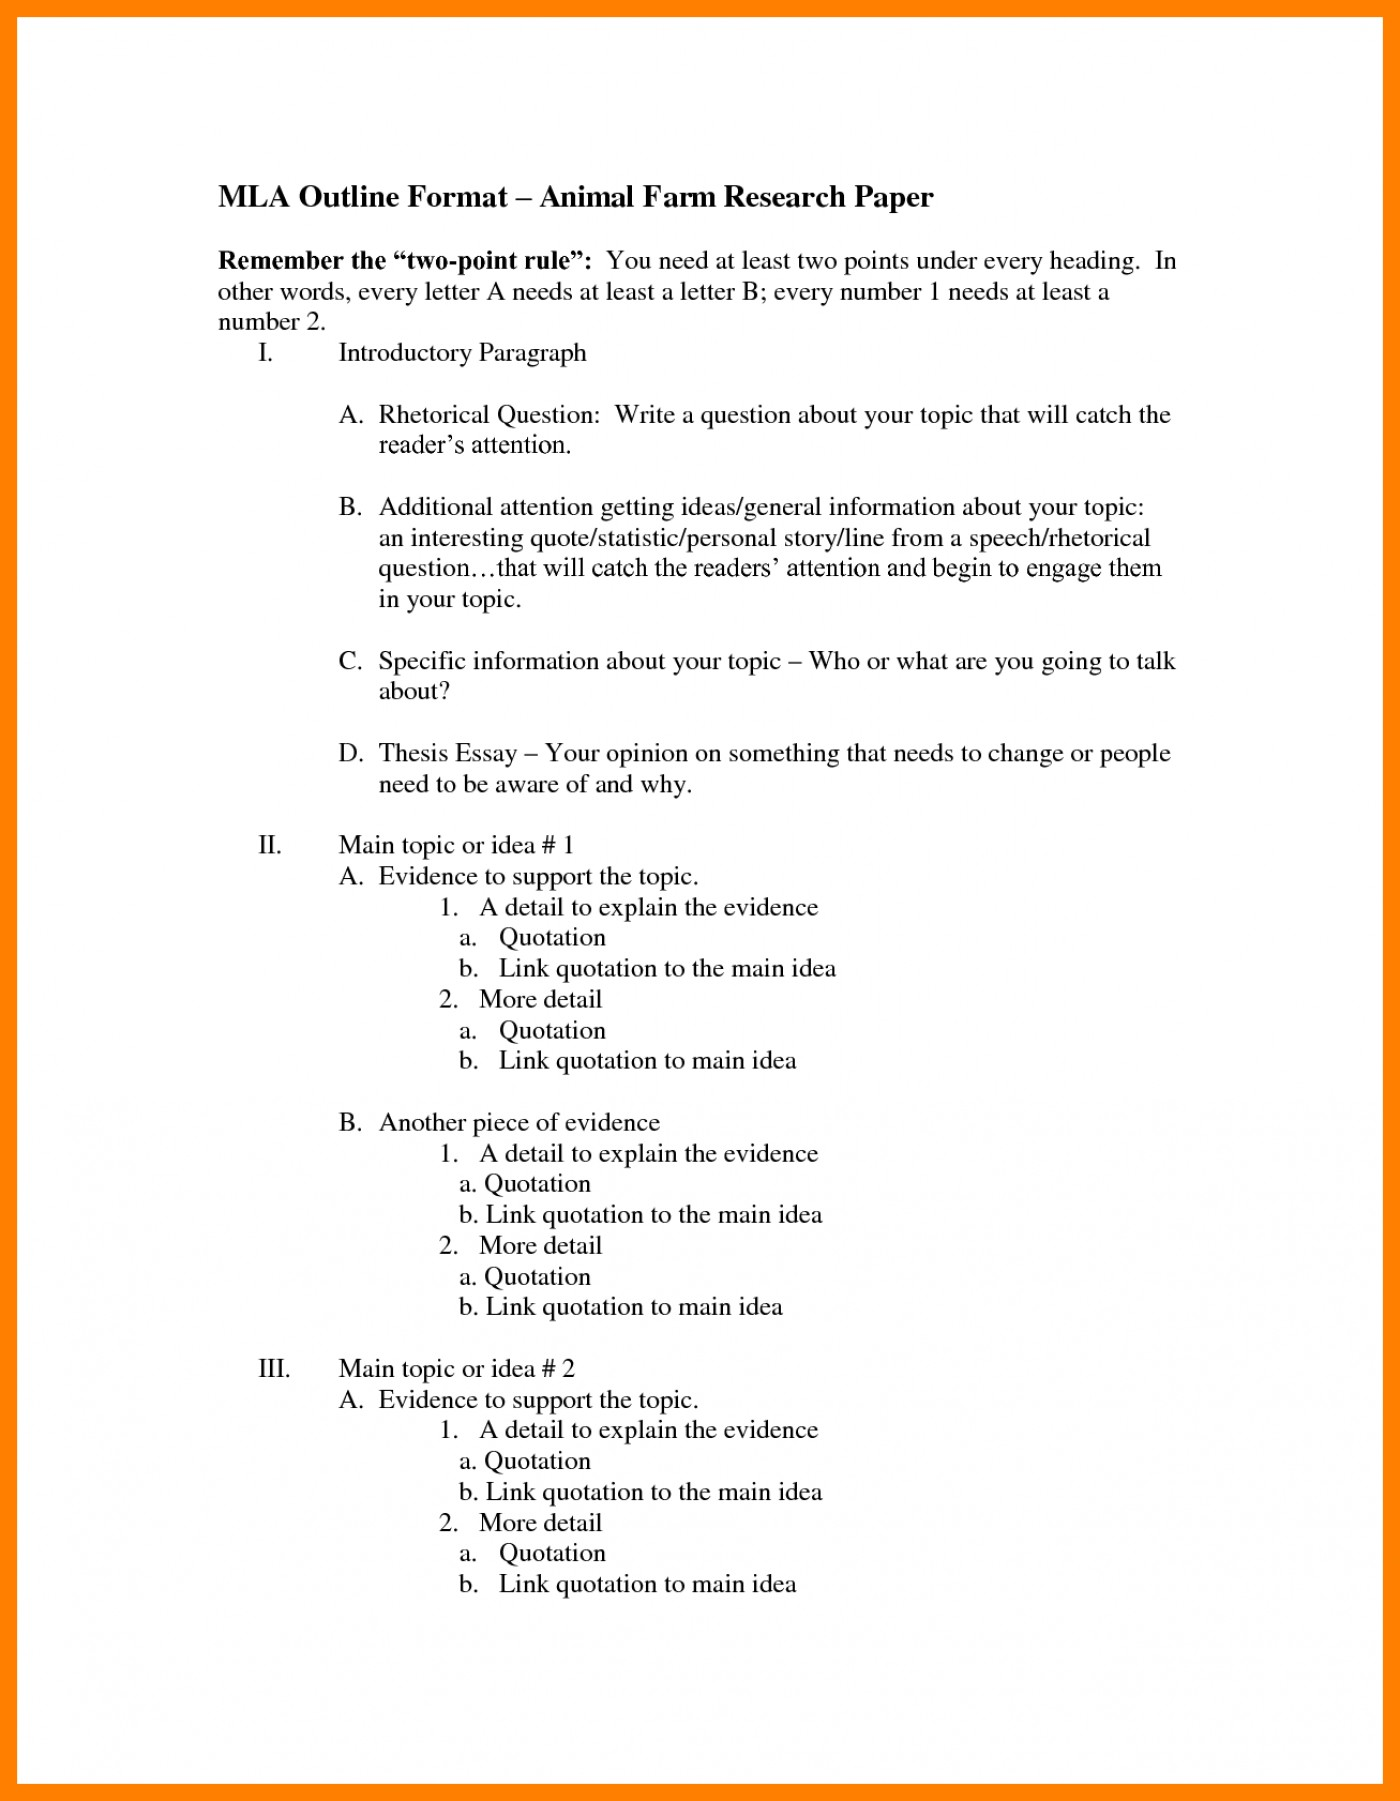 Conditons and materials for essay